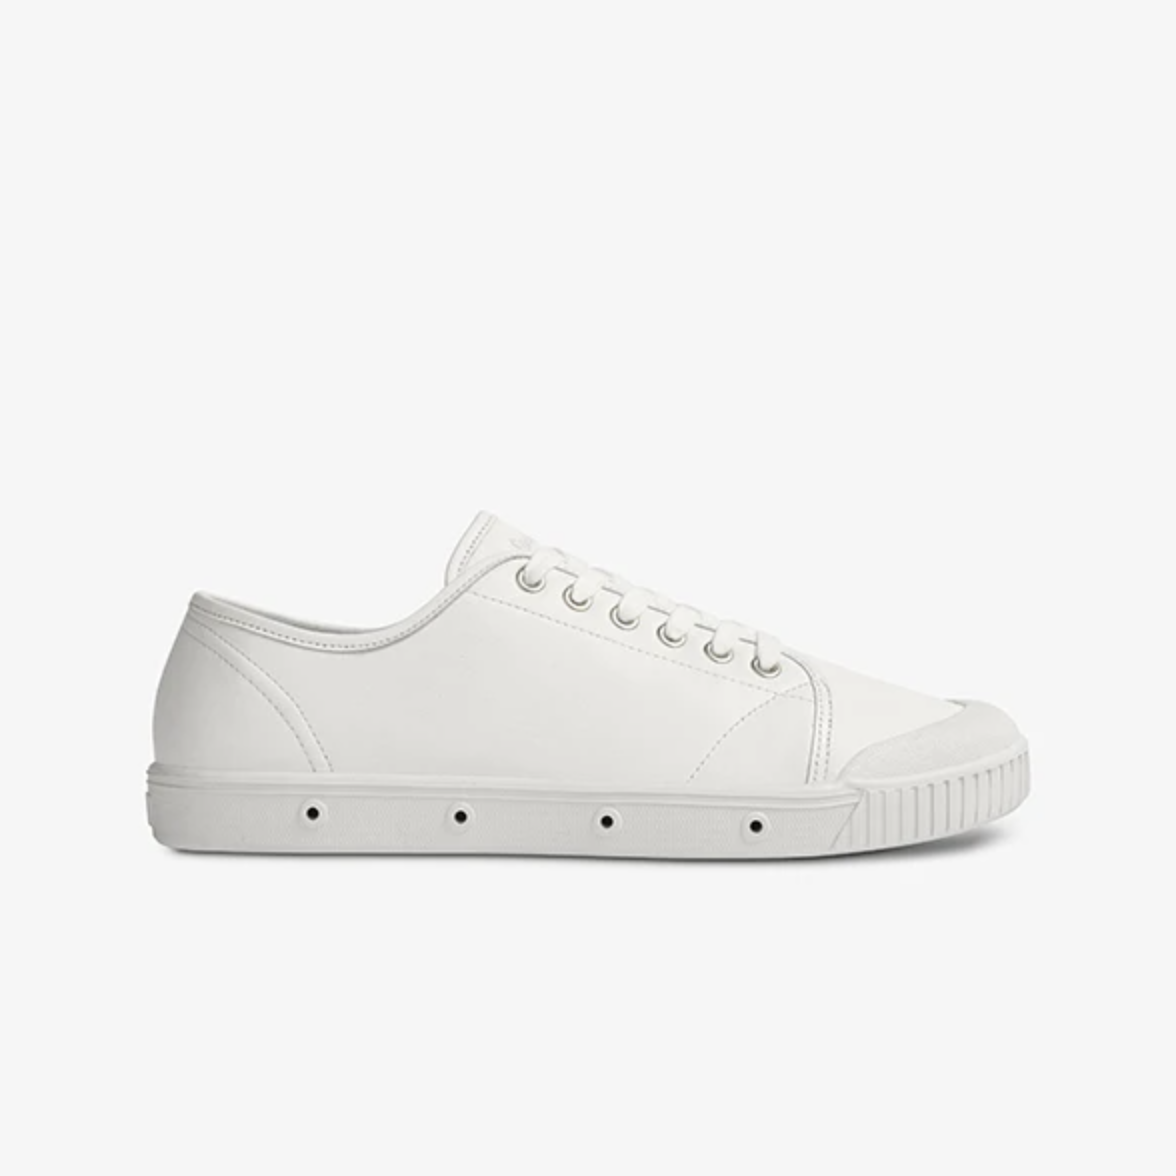 Spring Court G2S 5001 - Classic Leather / Womens